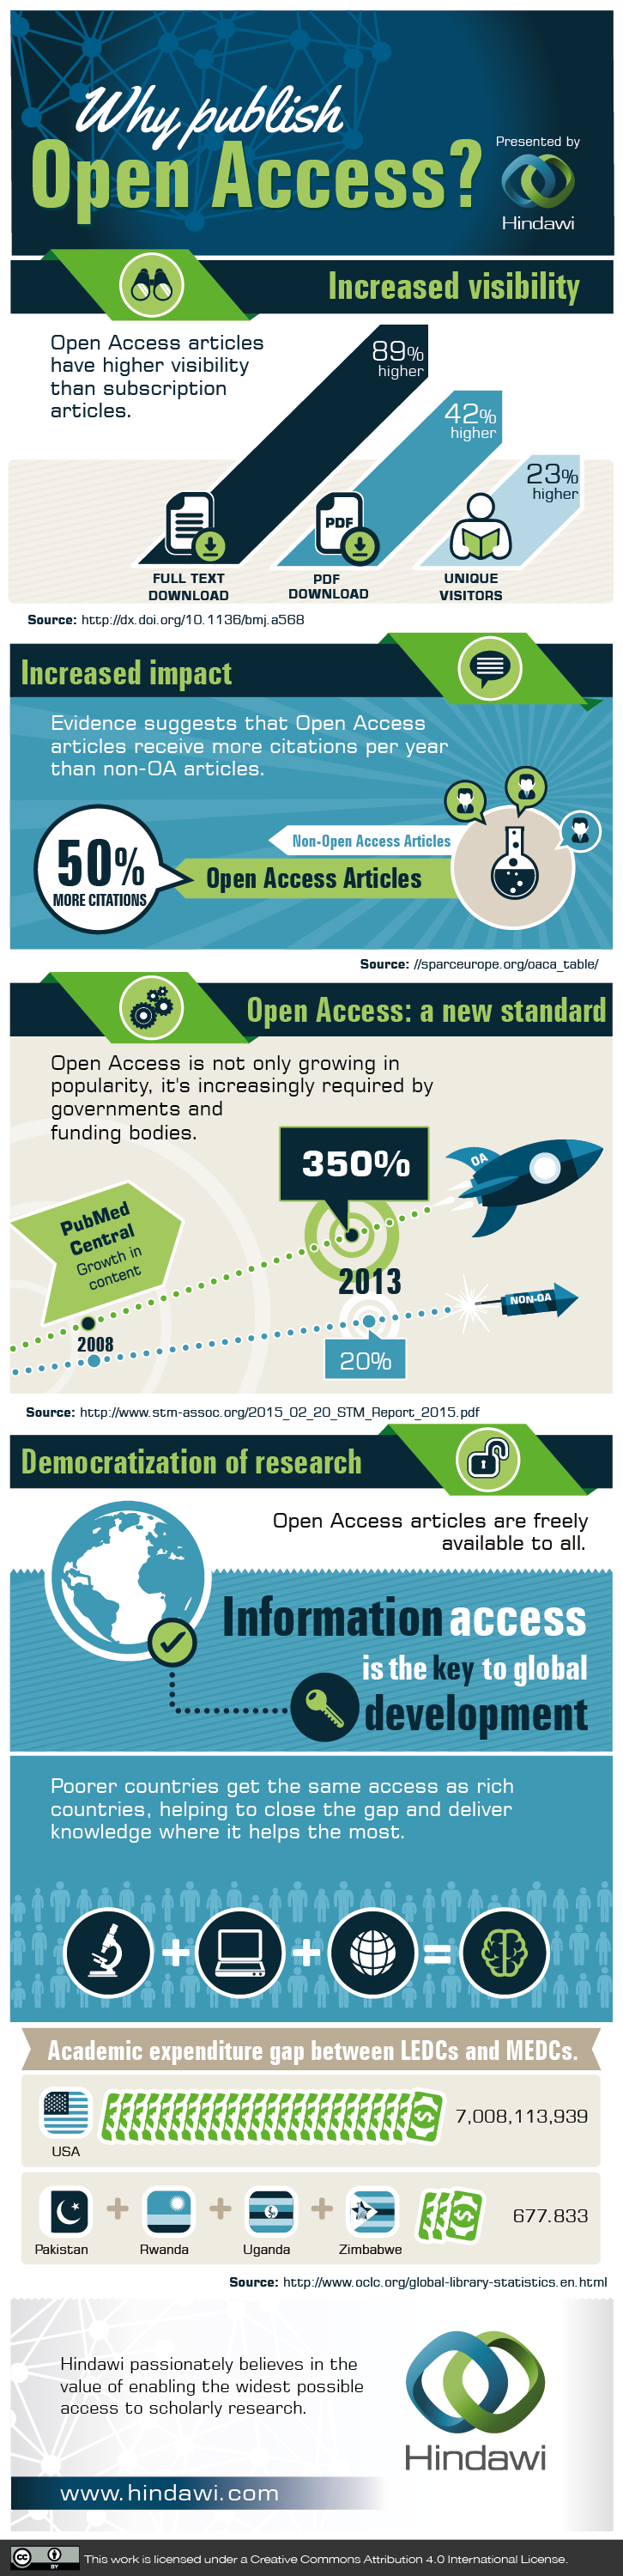 Why publish open access?